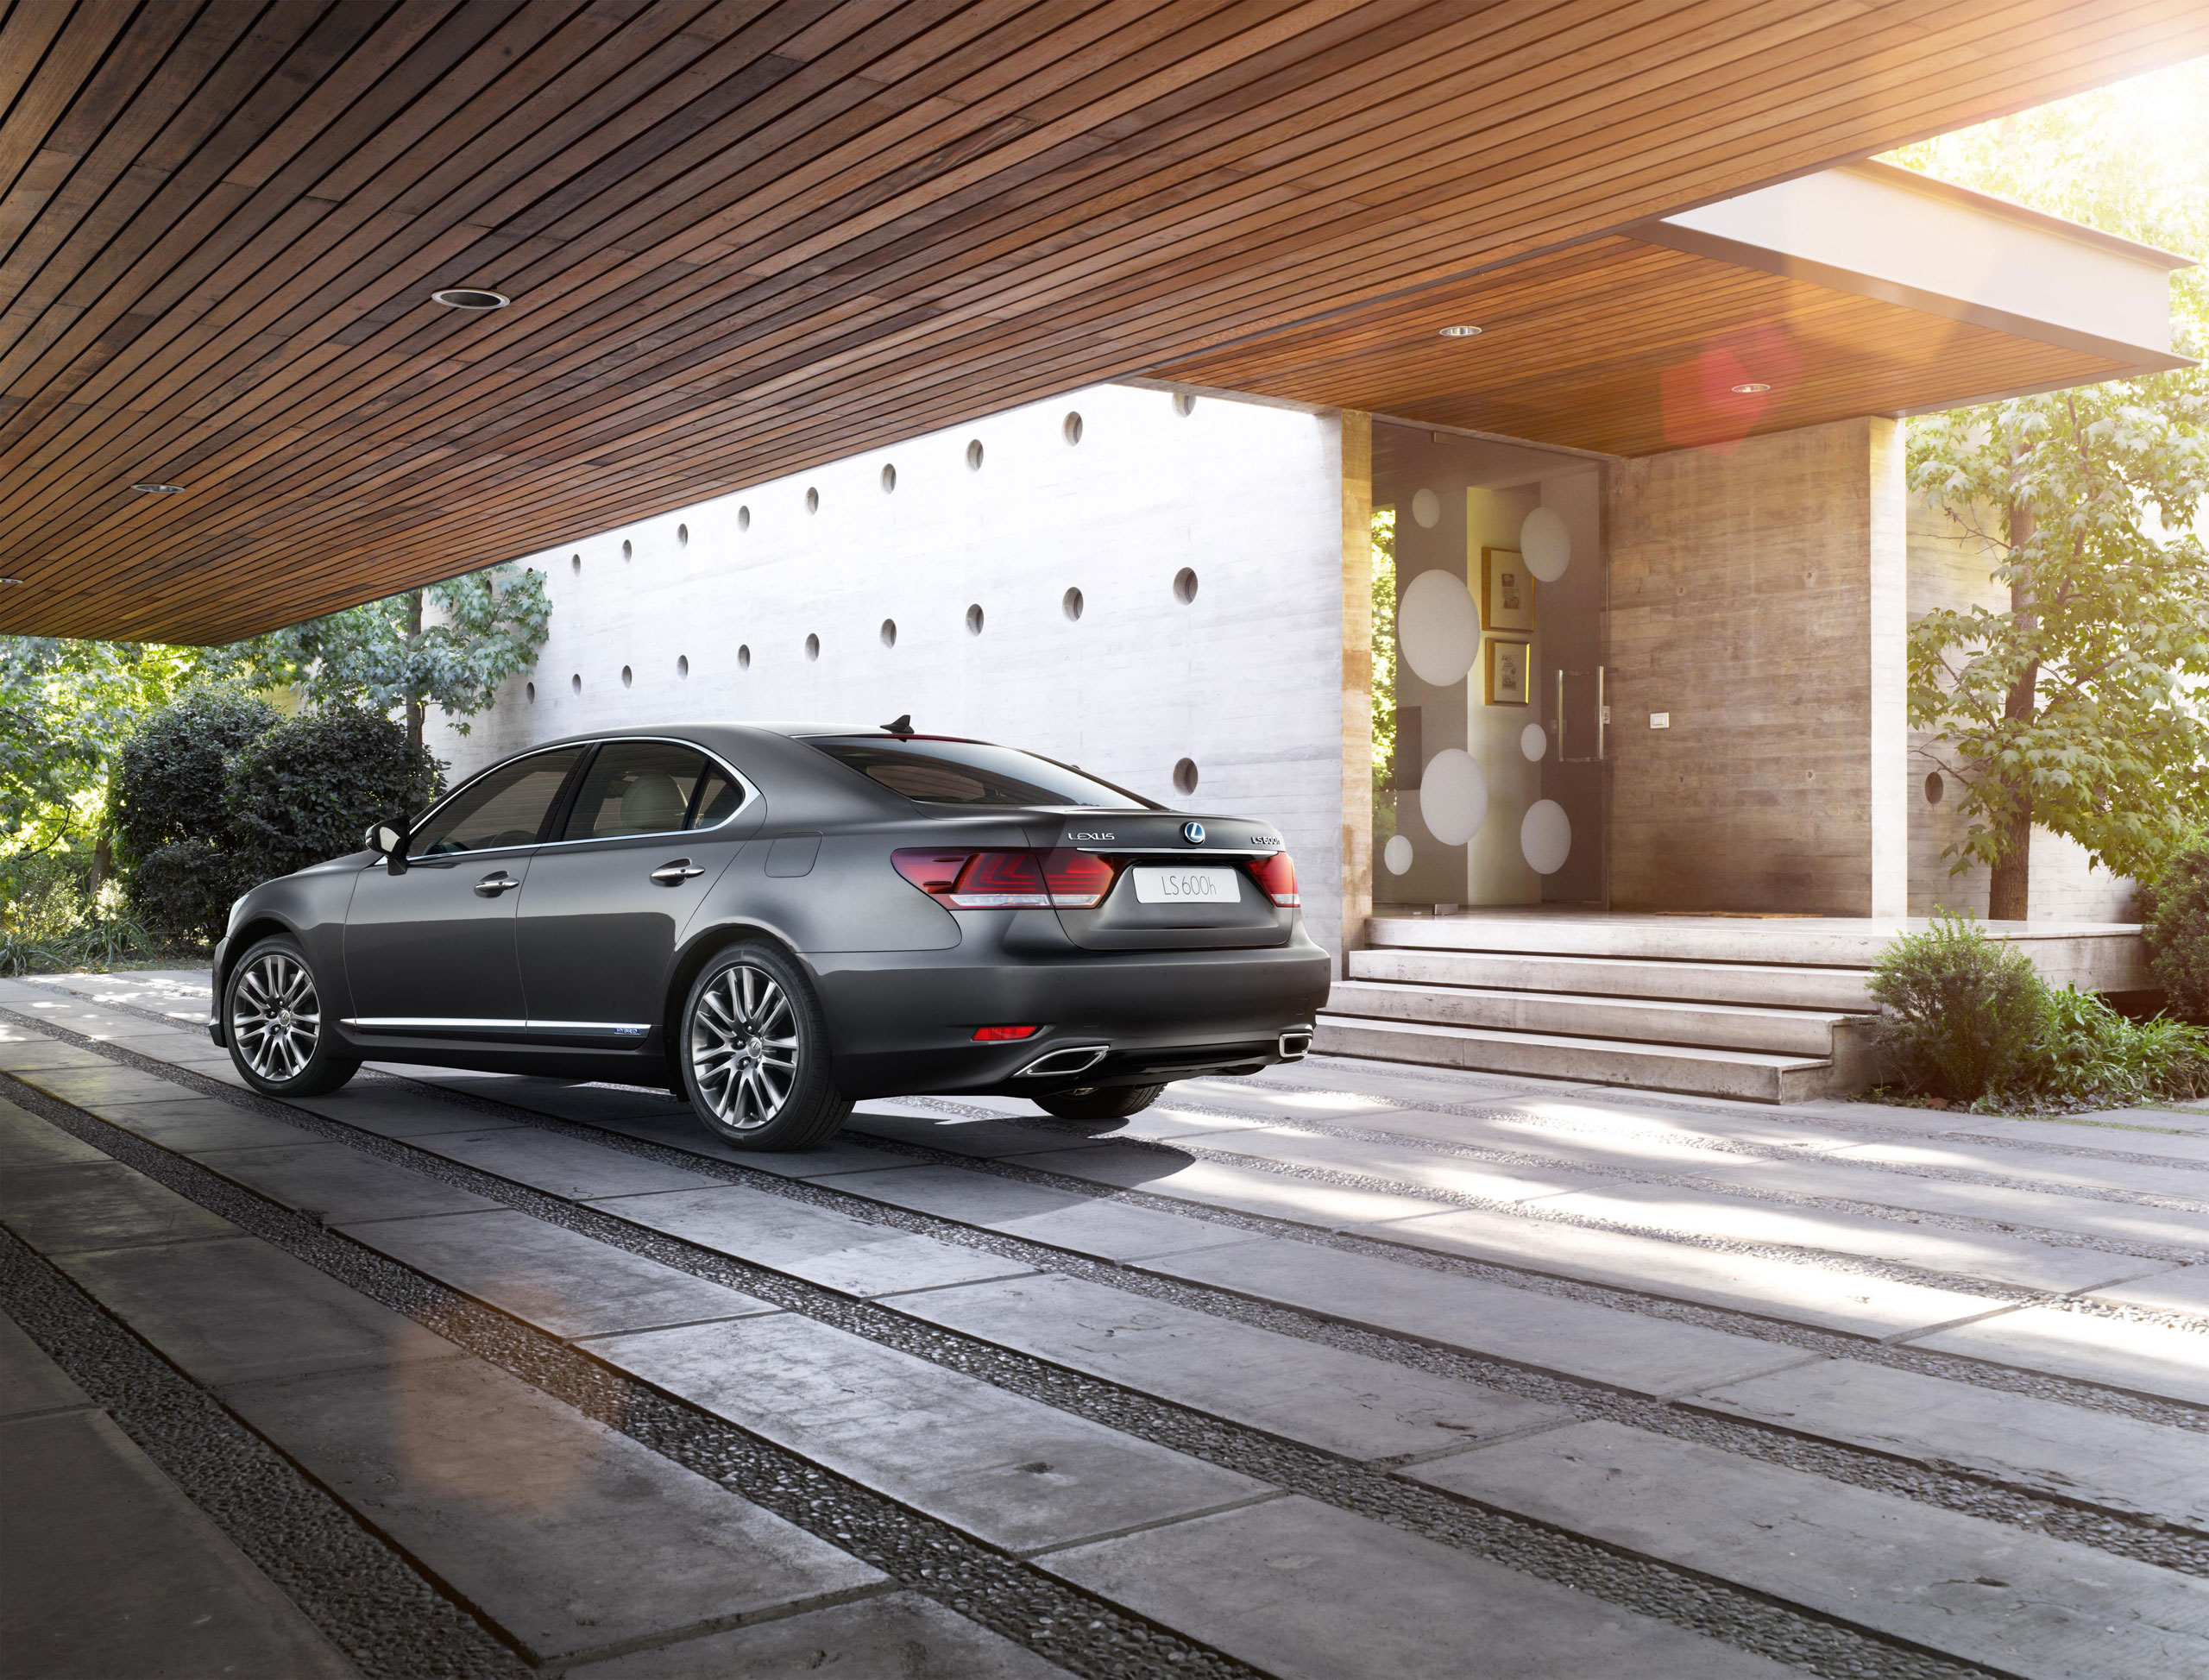 Stunning 2013 Lexus LS Photo Gallery | Lexus Enthusiast